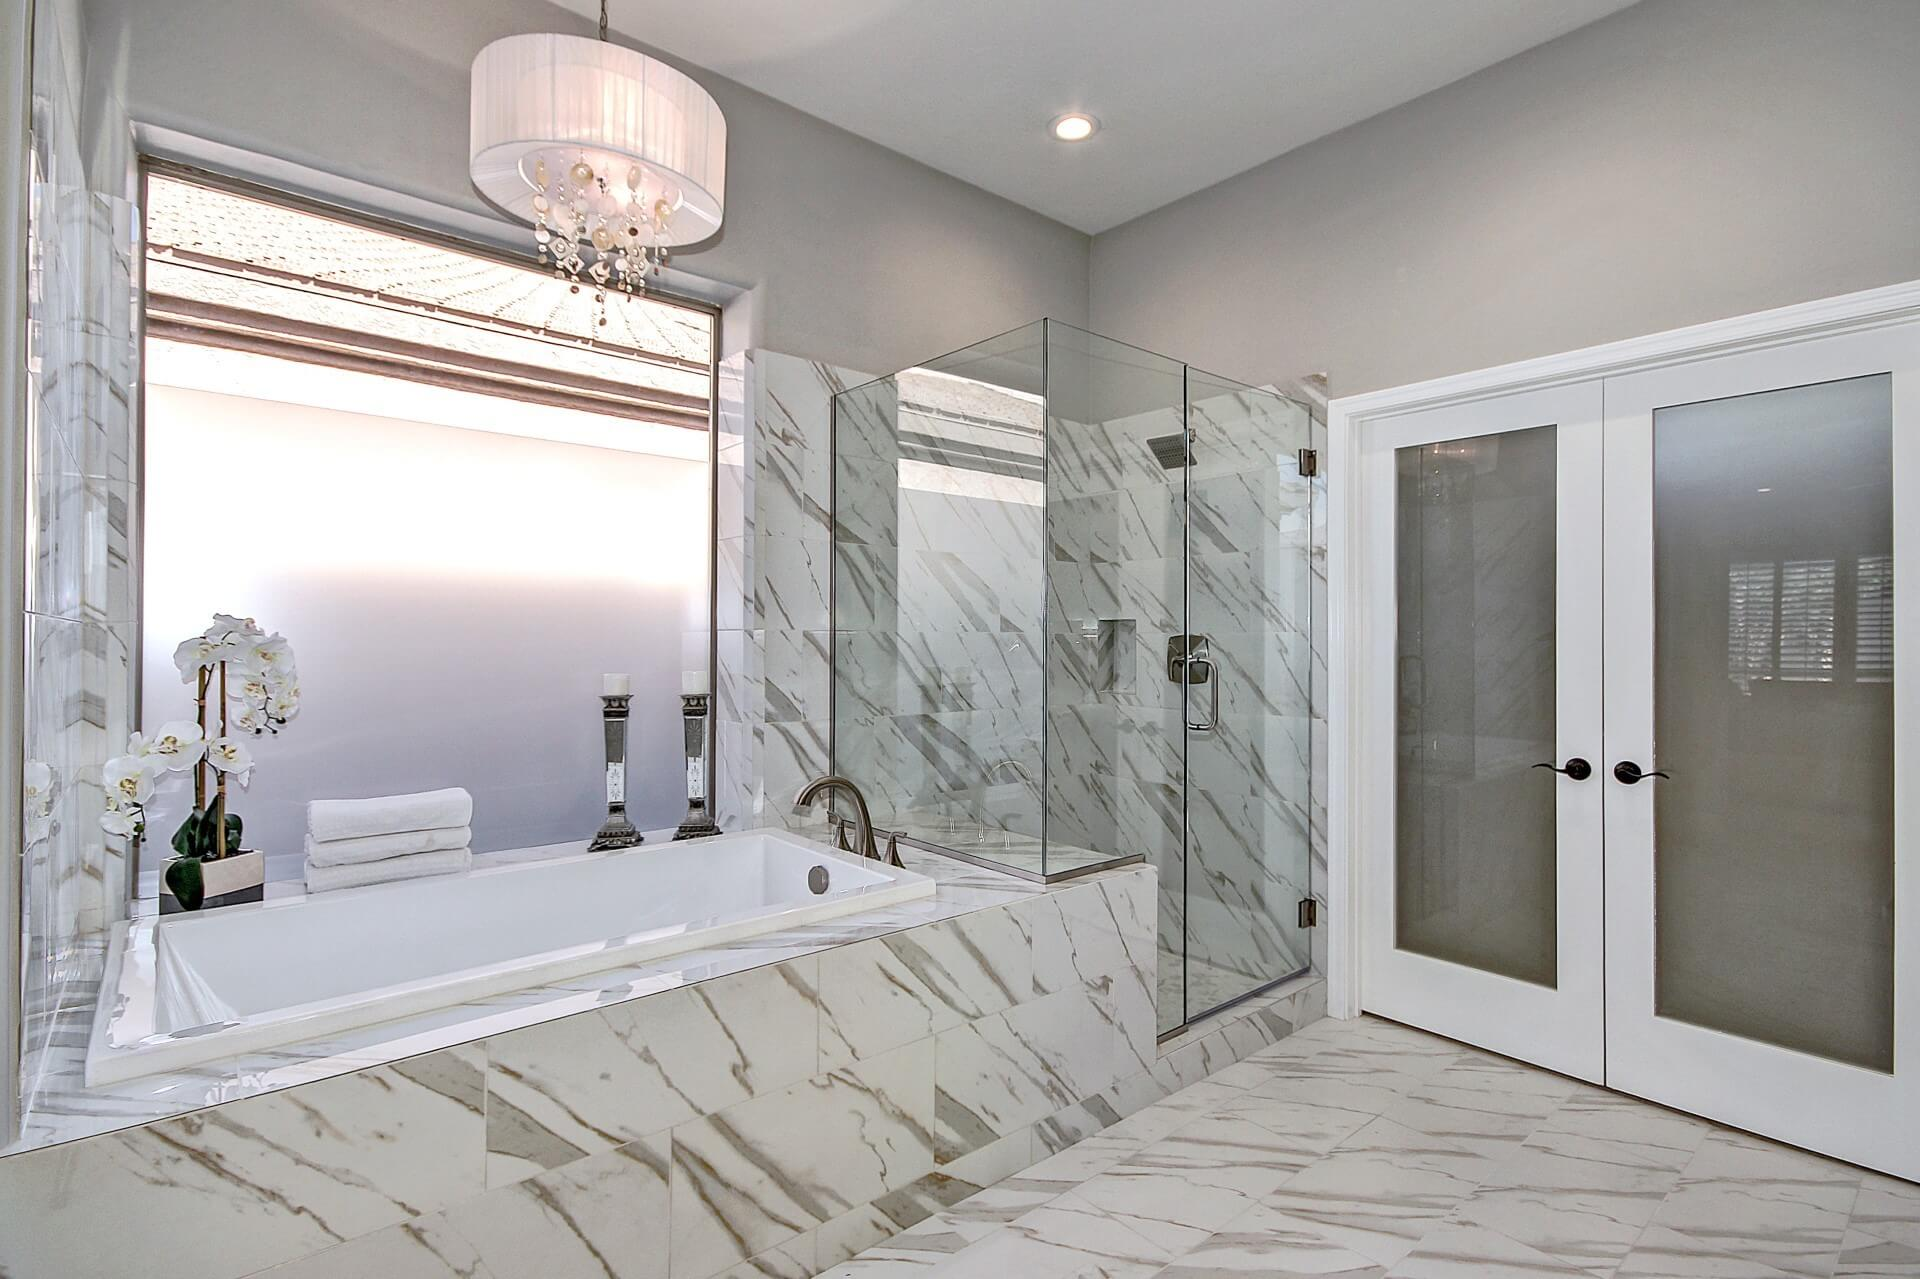 Bathroom Remodeling Contractors in Scottsdale AZ